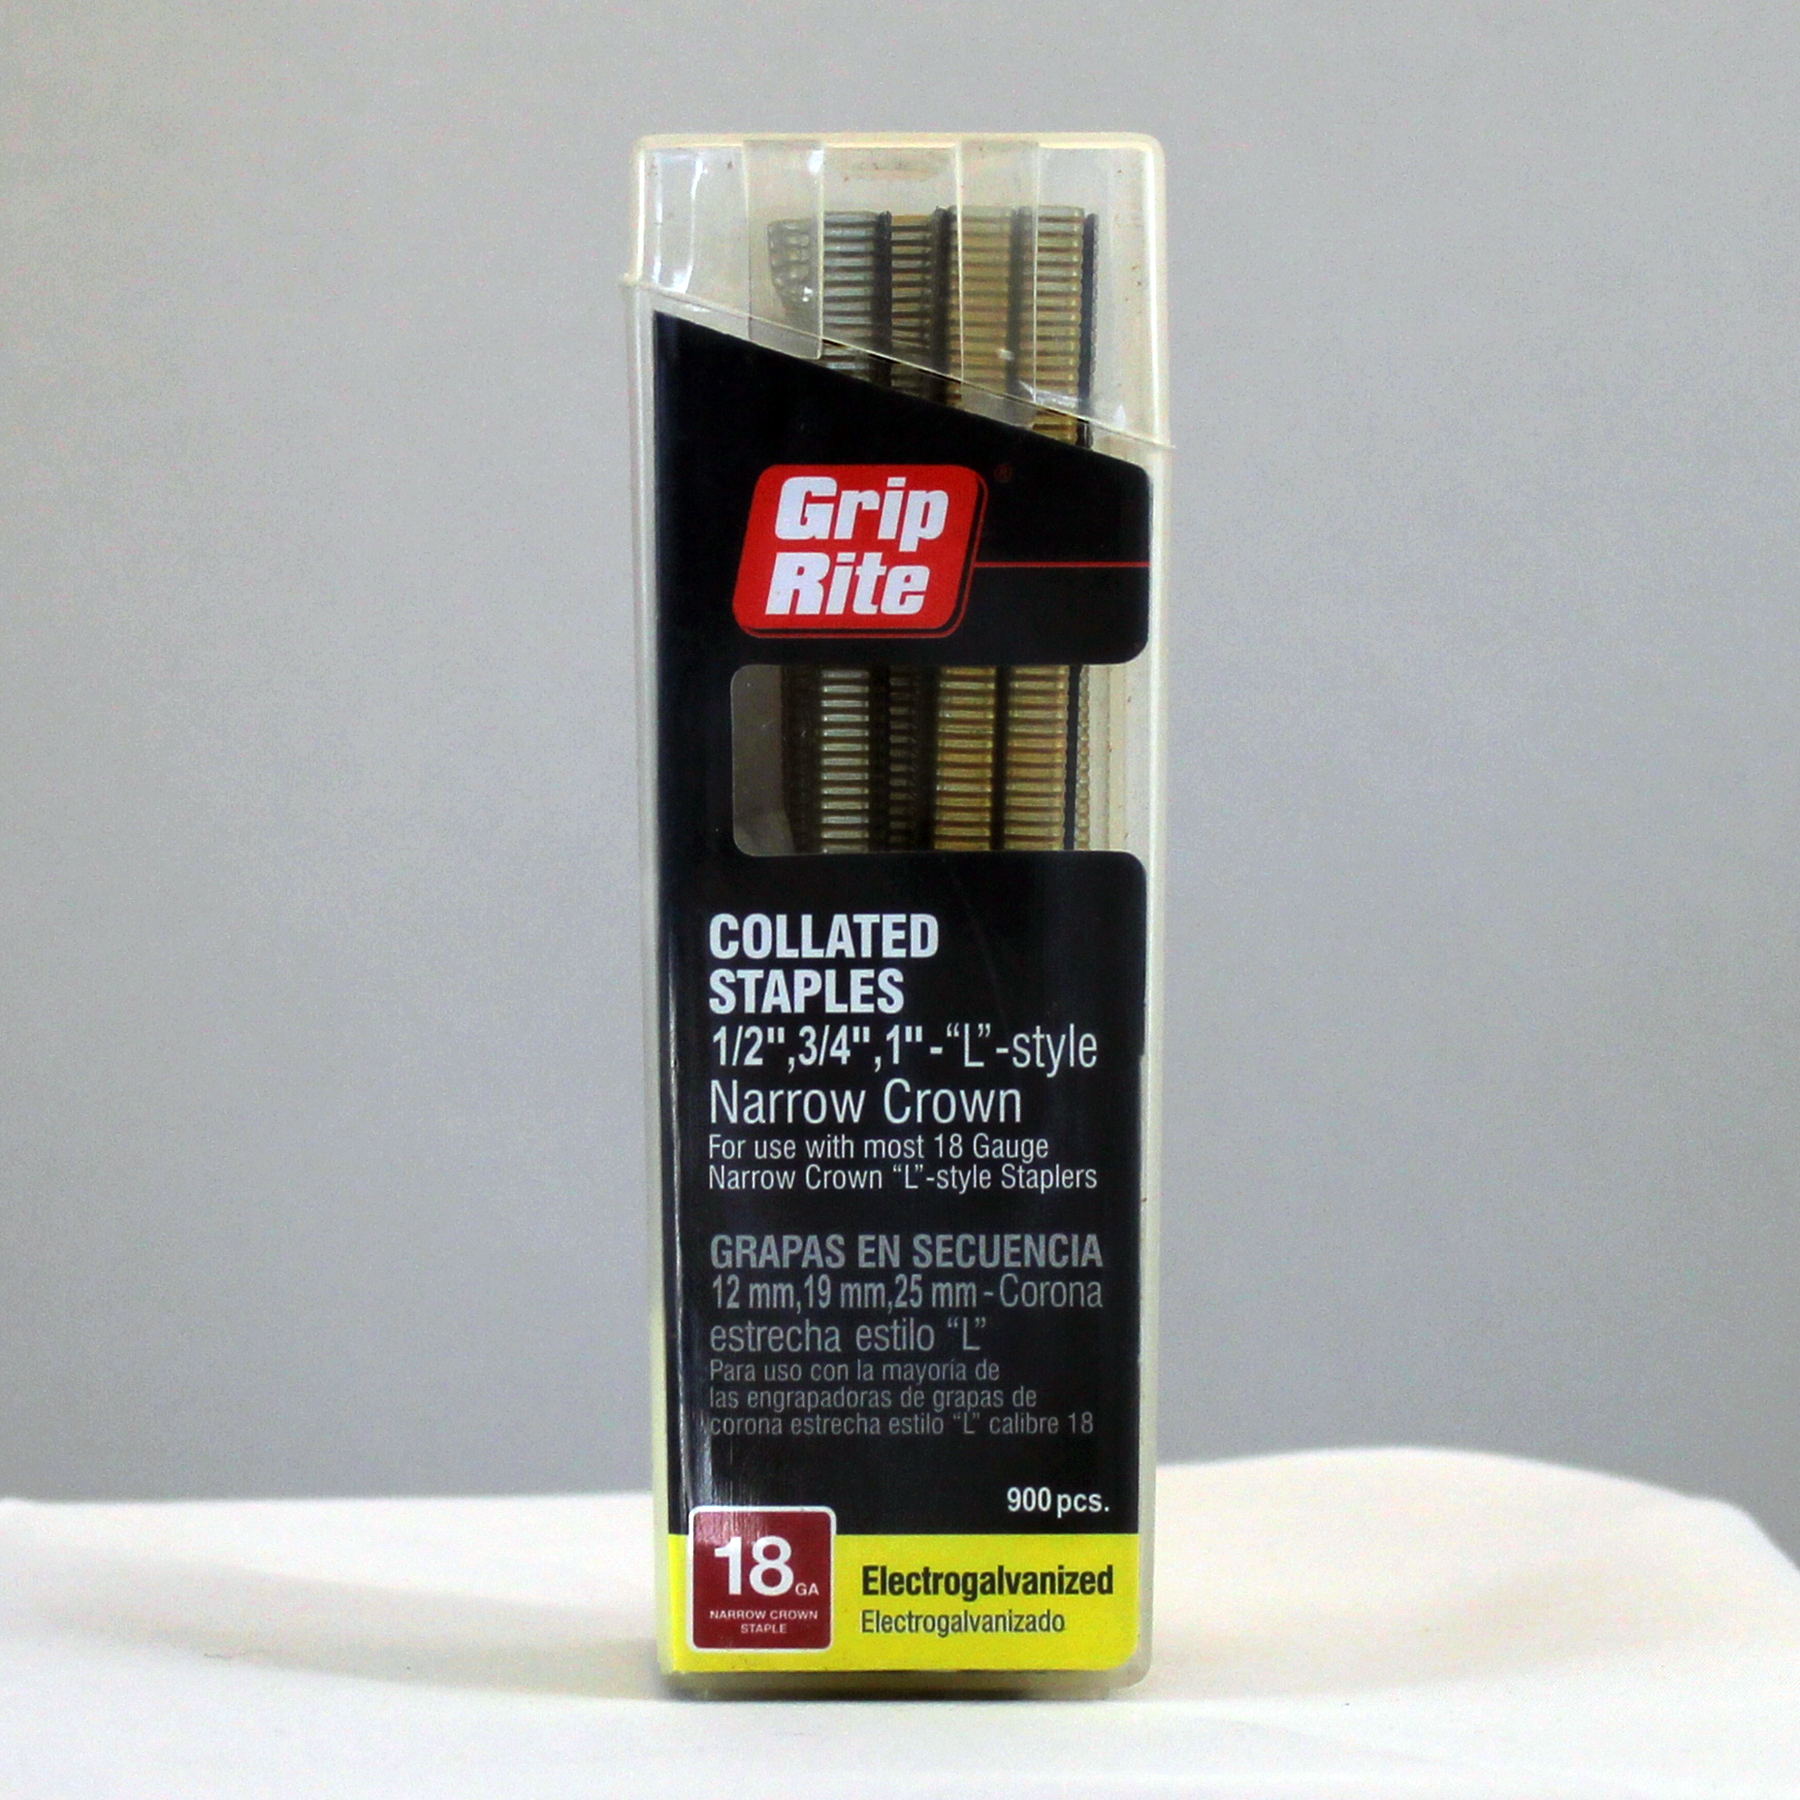 "Grip Rite 18 Gauge Collated Staples Mix Pack, 1/2"", 3/4"", 1"" - ""L"" Style, 1/4"" Narrow Crown"